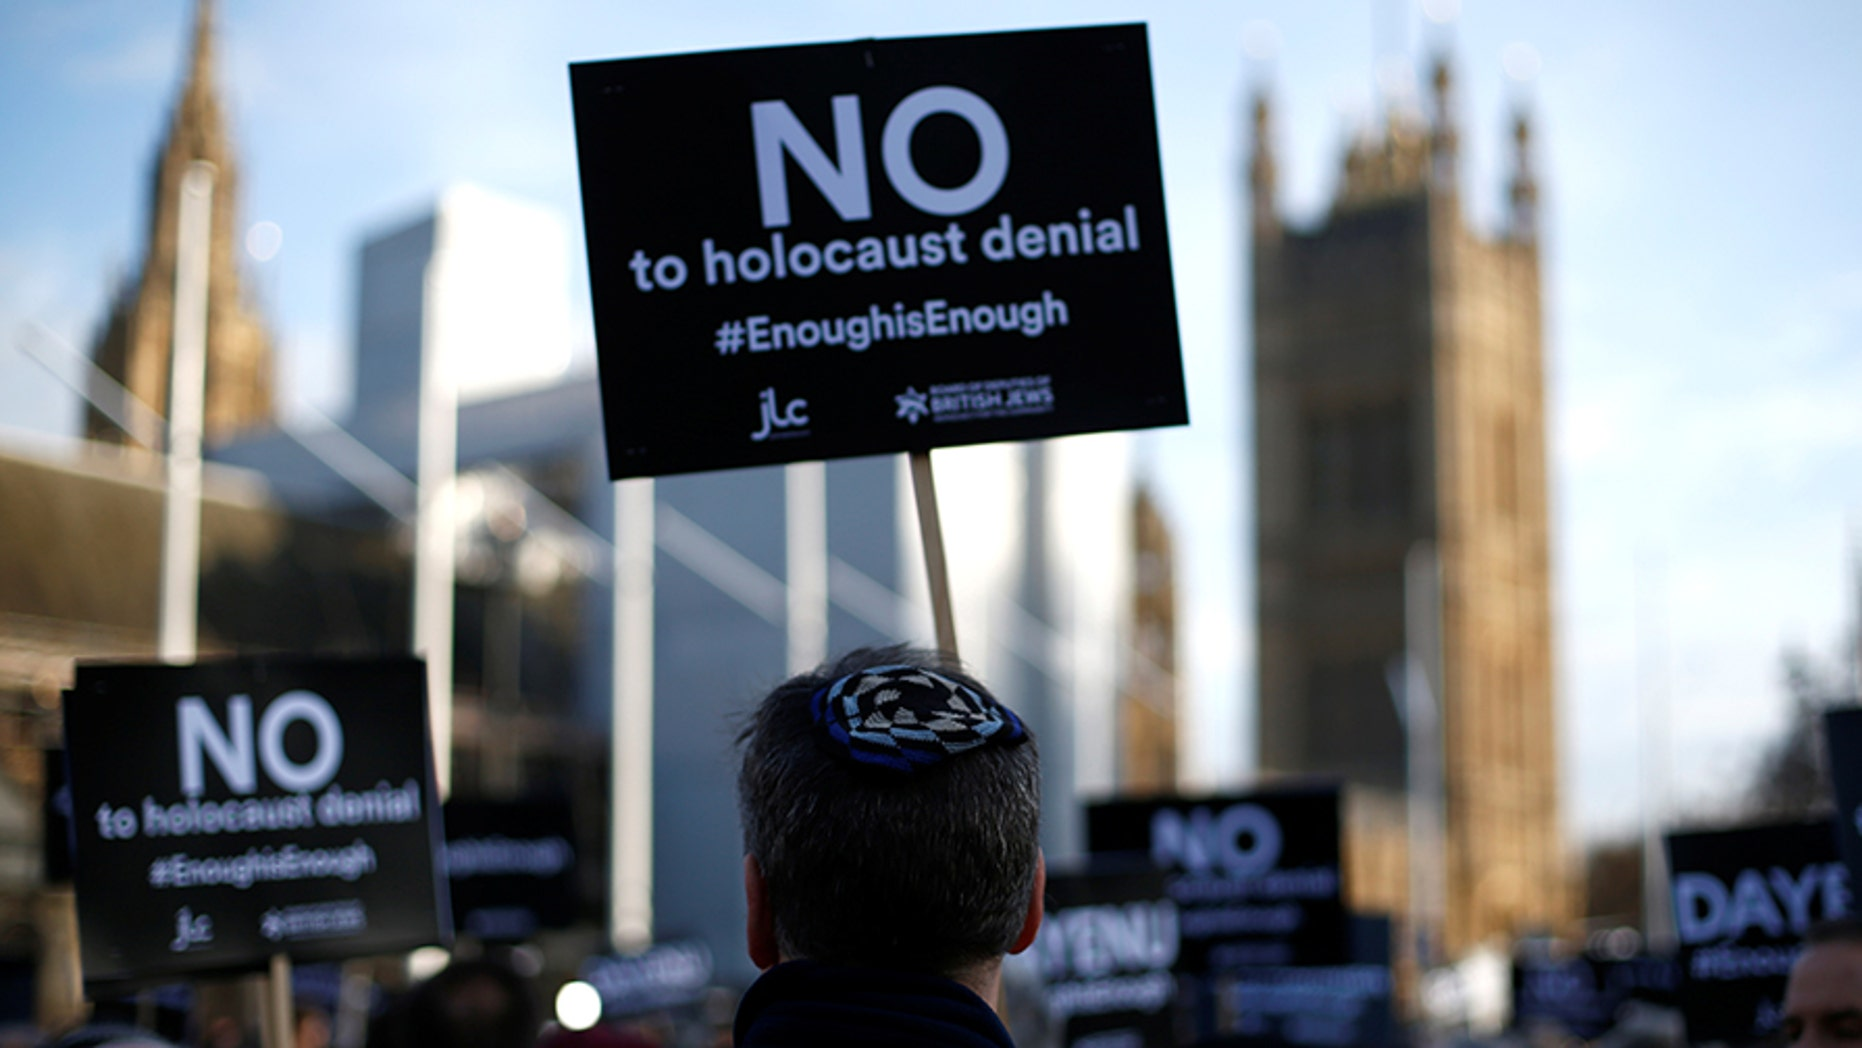 Protesters took to Parliament to protest the Labour Party's alleged anti-Semitism.